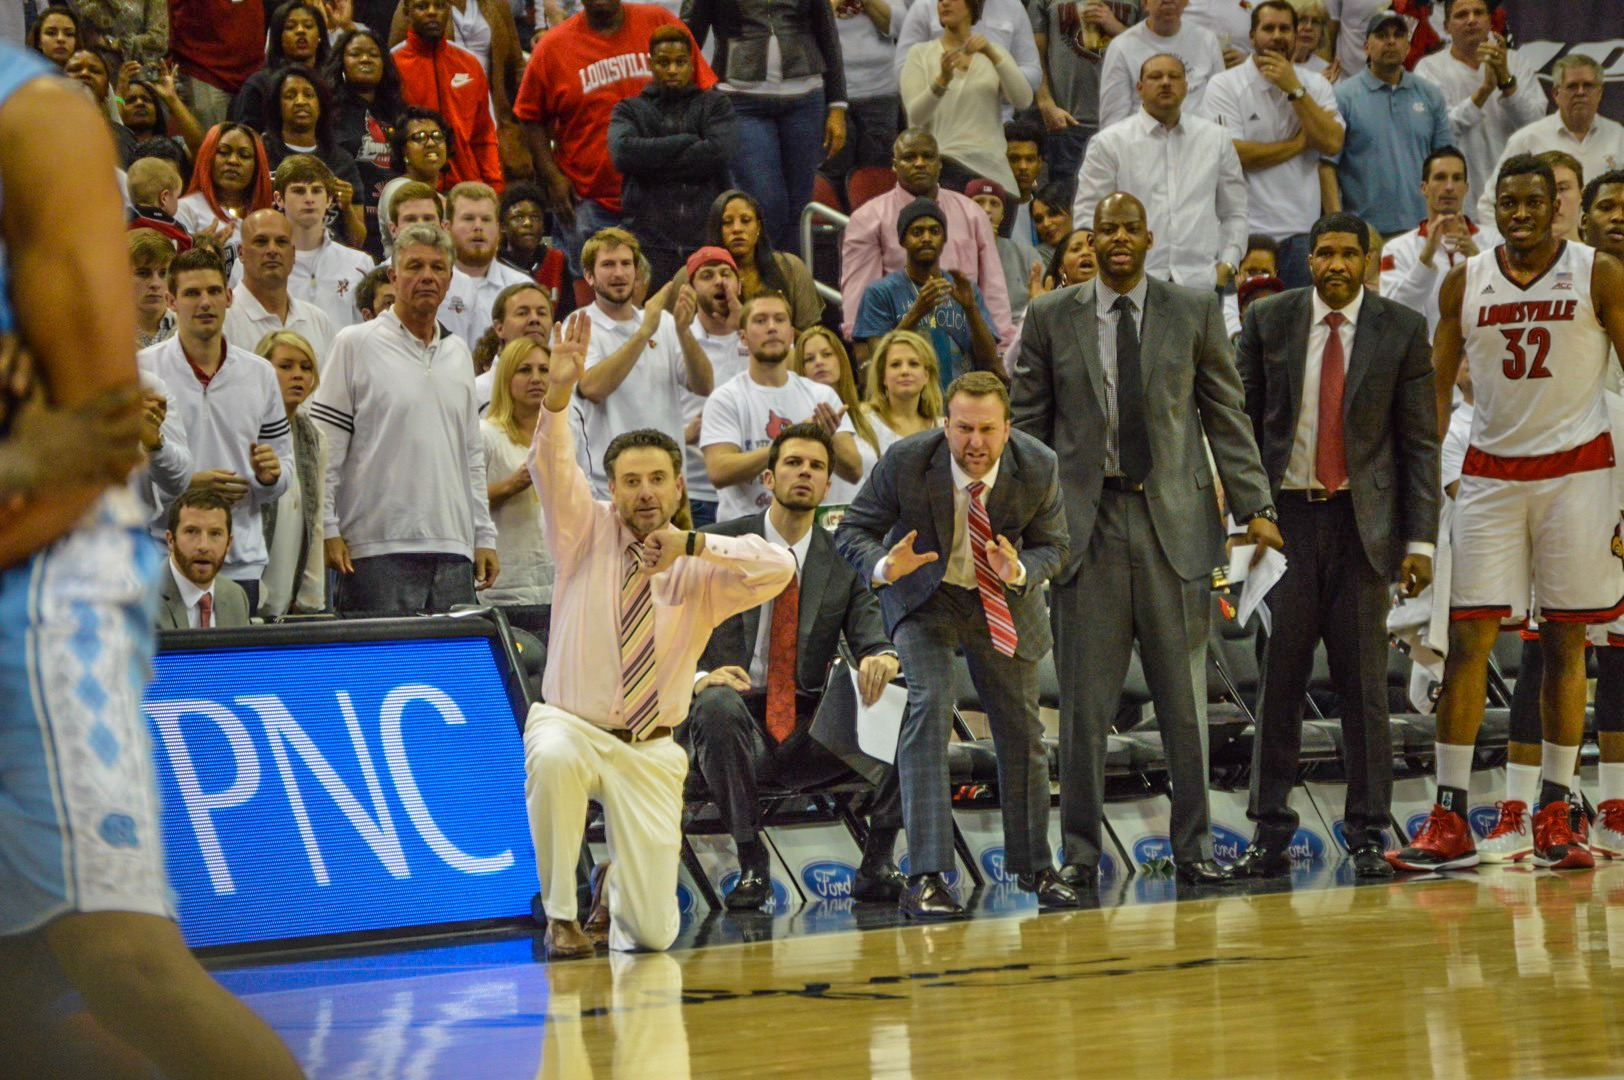 Louisville Bench, Rick Pitino, David Padgett, Mike Balado, Wyking Jones, Kenny Johnson, Chinanu Onuaku Louisville vs. North Carolina 1-31-2015 Photo by Seth Bloom